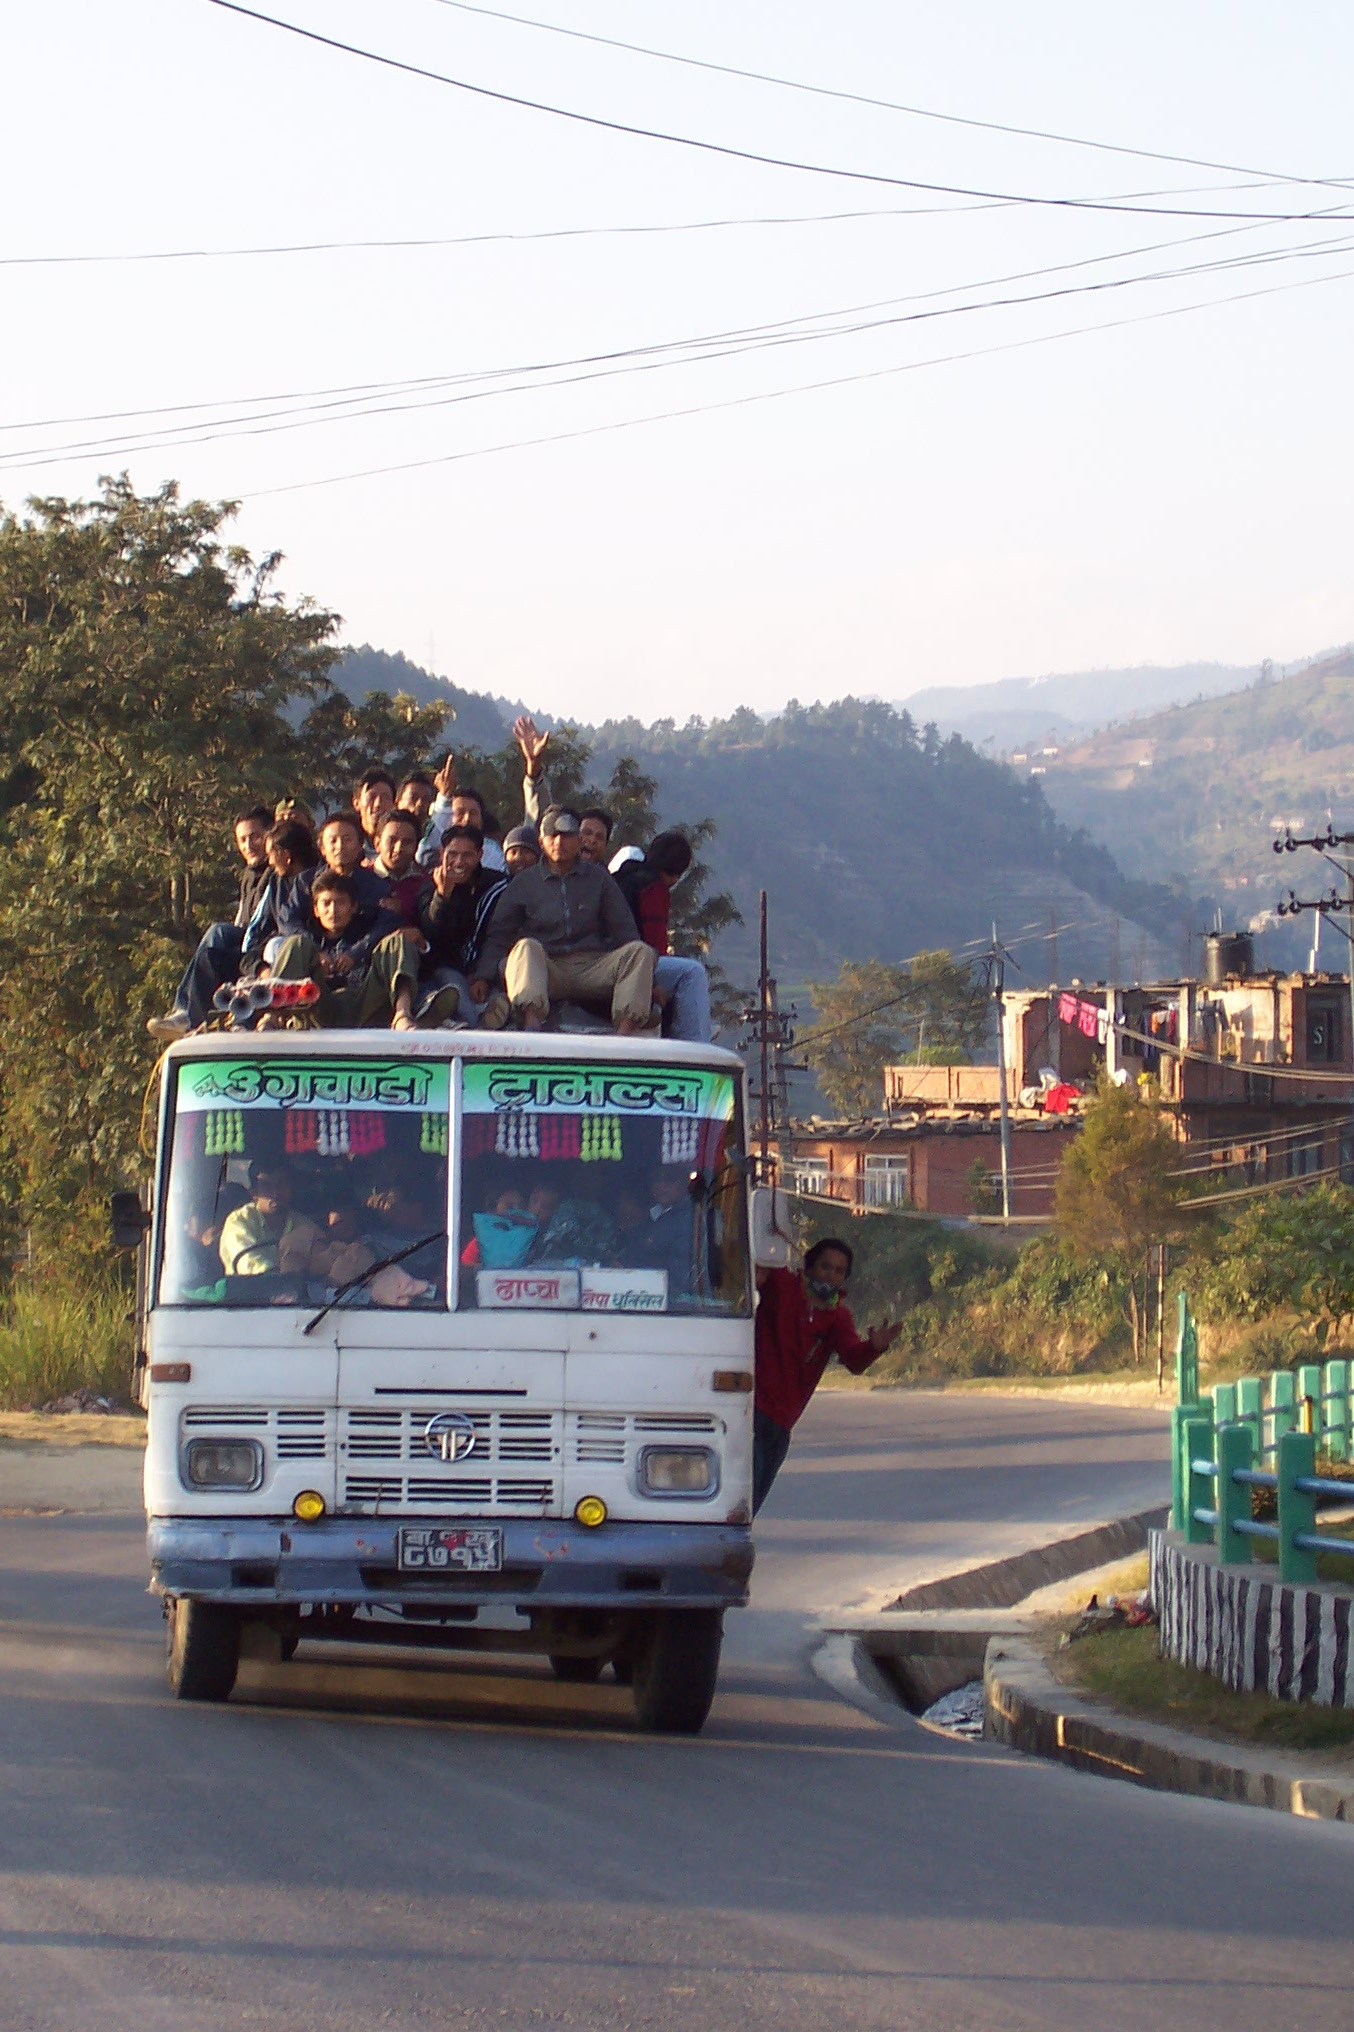 annet bus transport vehicle passengers people sitting on top